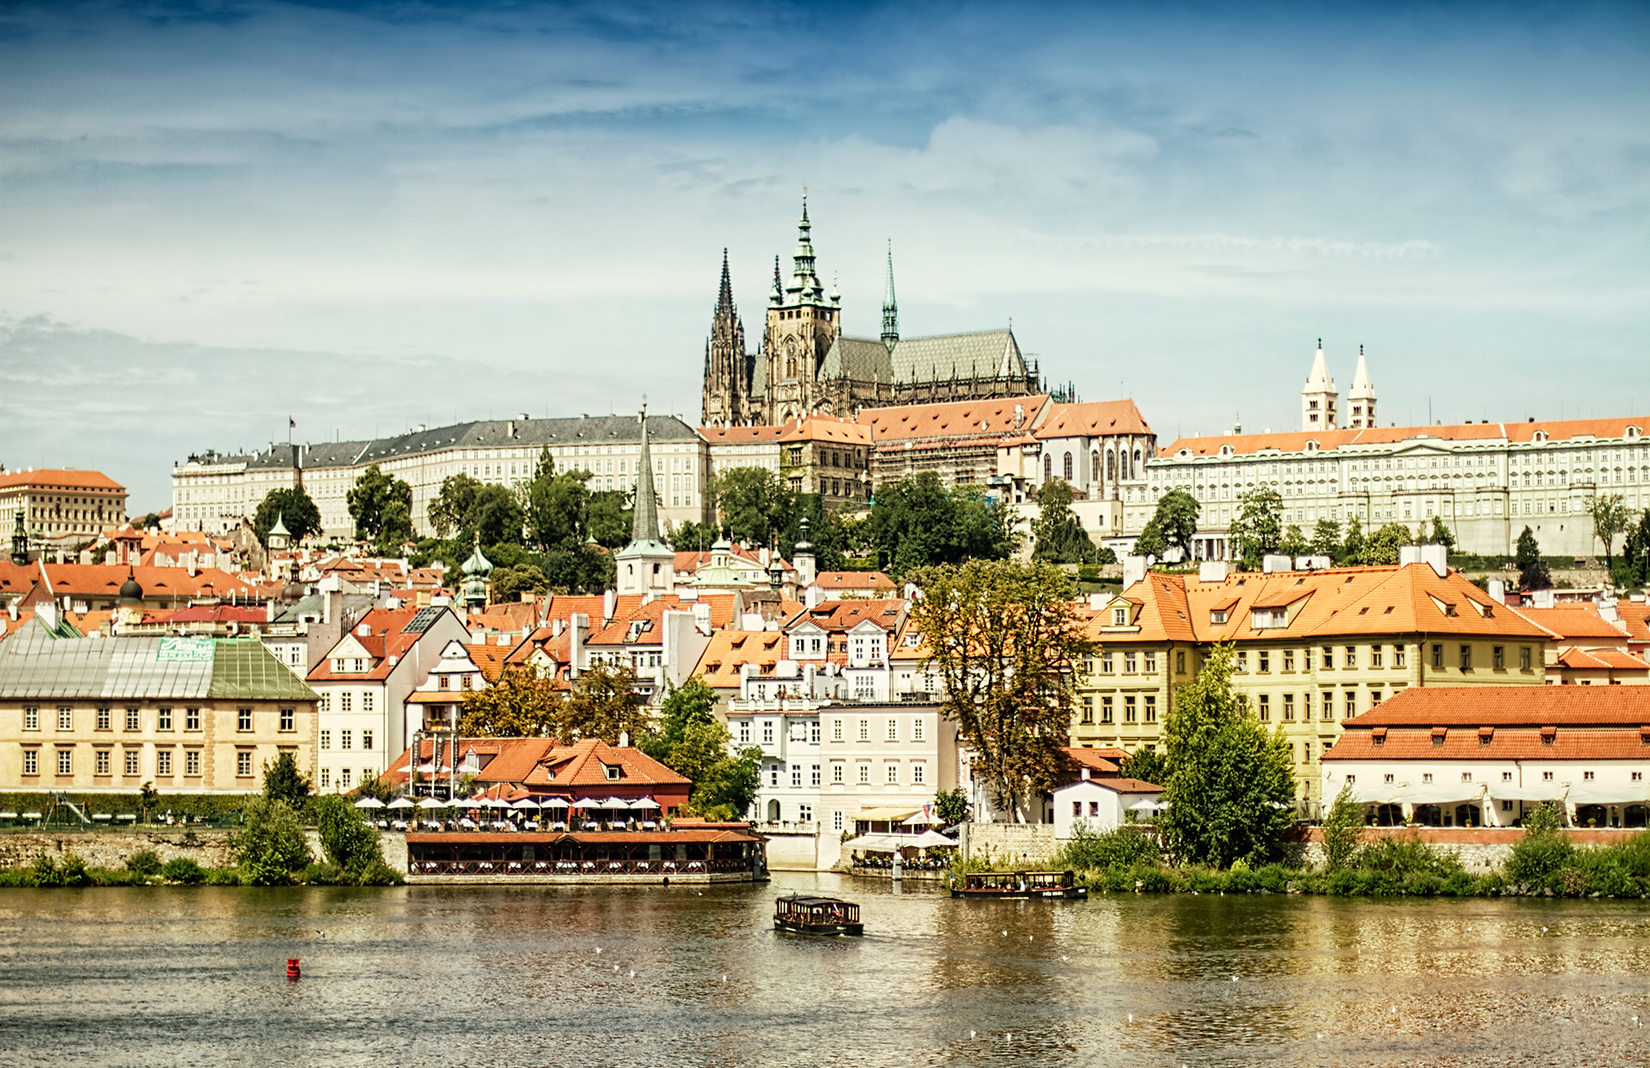 ChallengePrague - Swimming in a river with a view on Prague castle, transition area on a bridge in the city center,and running in the historical streets of the capital. That's FORD CHALLENGEPRAGUE! Uniquerace in the city center of one of the most beautiful cities in the world.